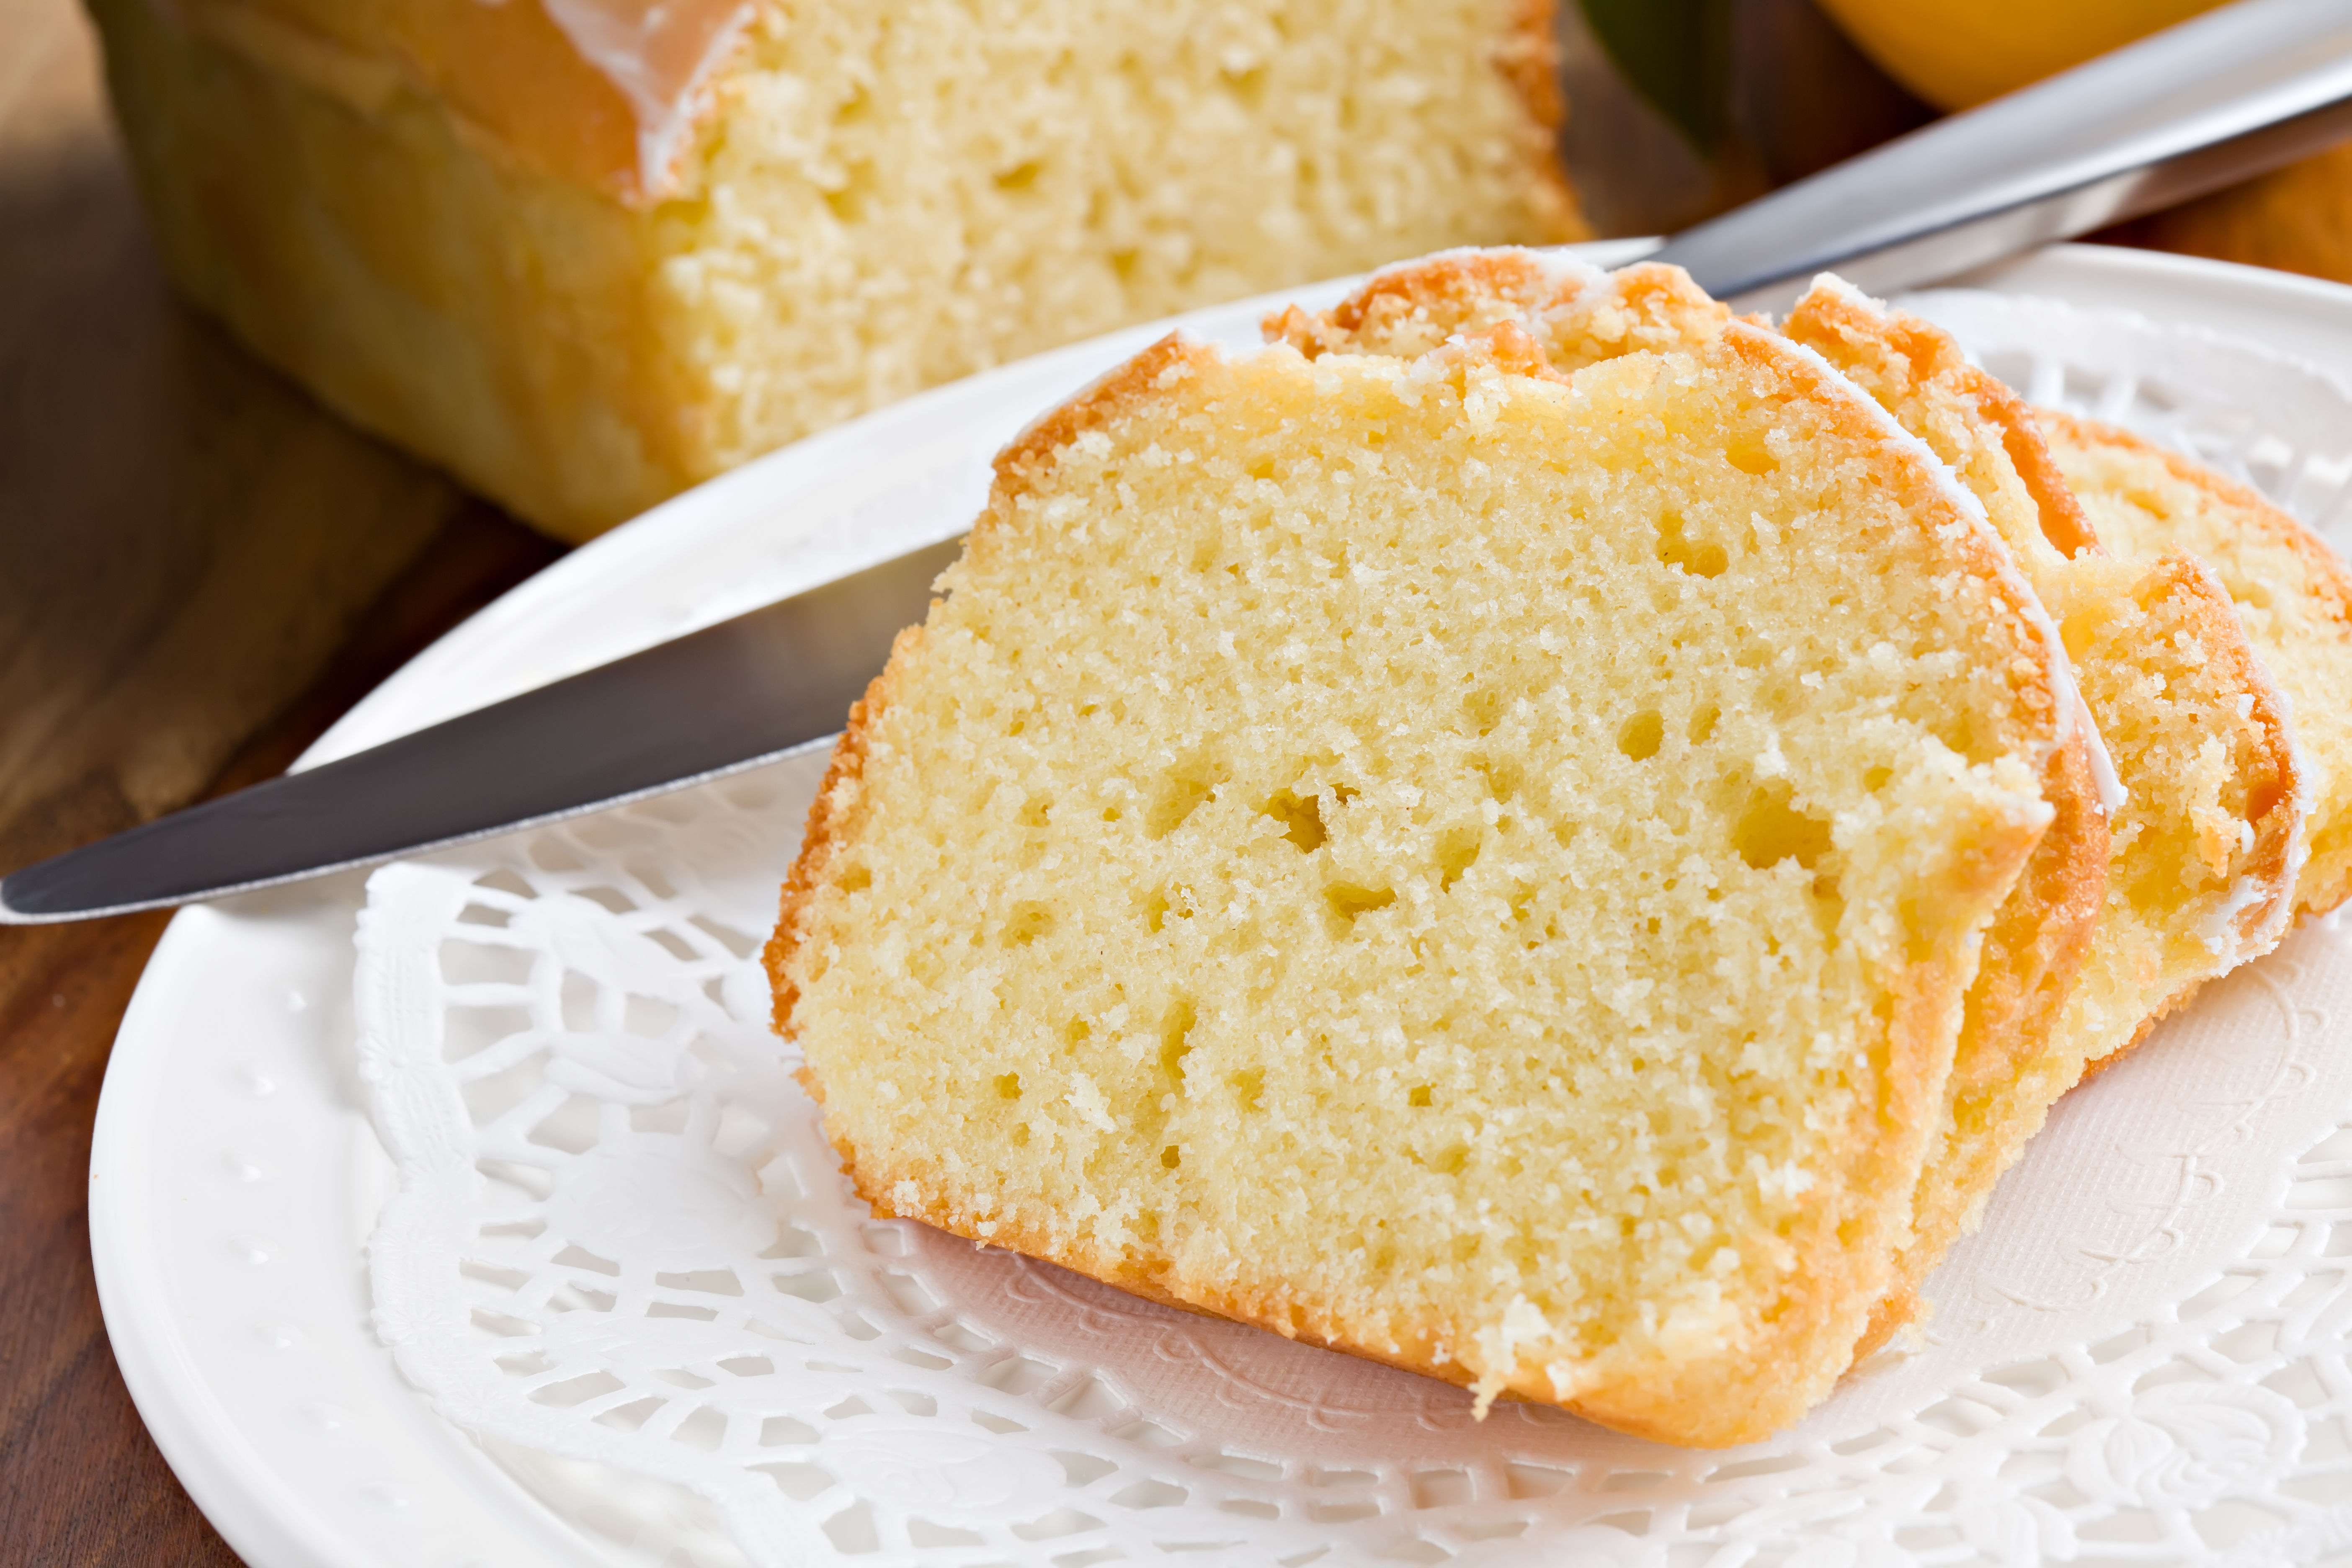 SUPER MOIST LEMON LOAF